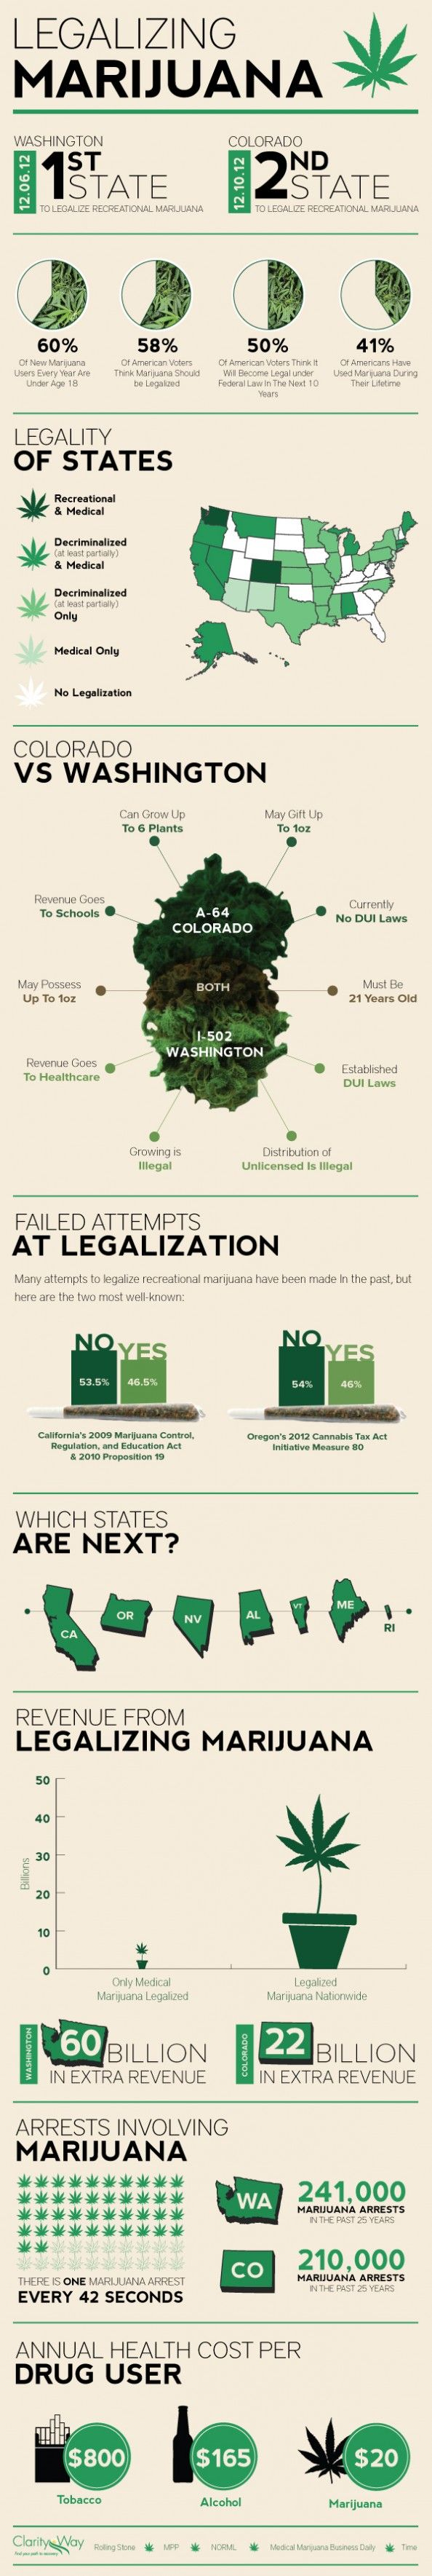 These are Facts about the 2 states that legalized Marijuana usage for recreational only.